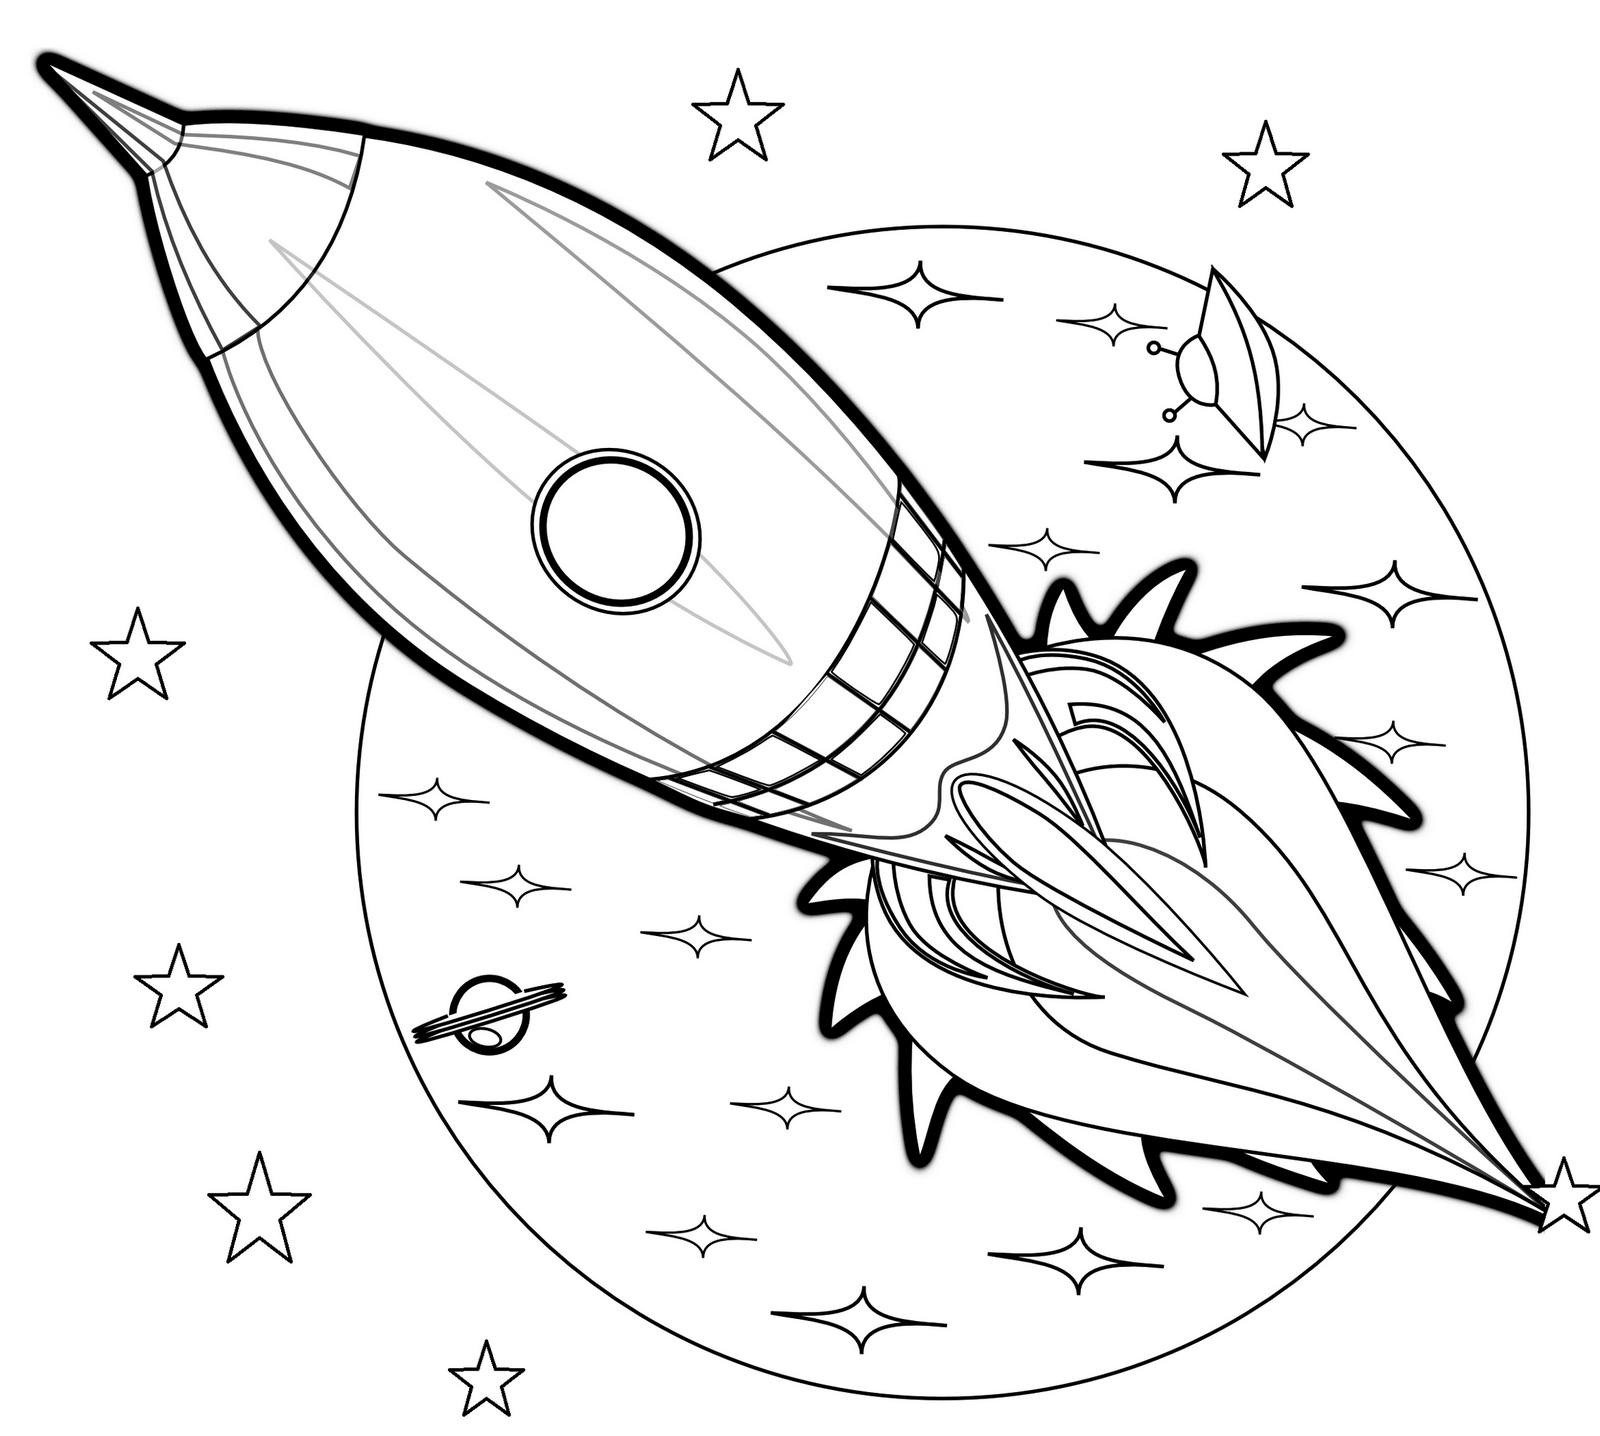 Rocket Aircraft Coloring Books Coloring Books Coloring Pages Color